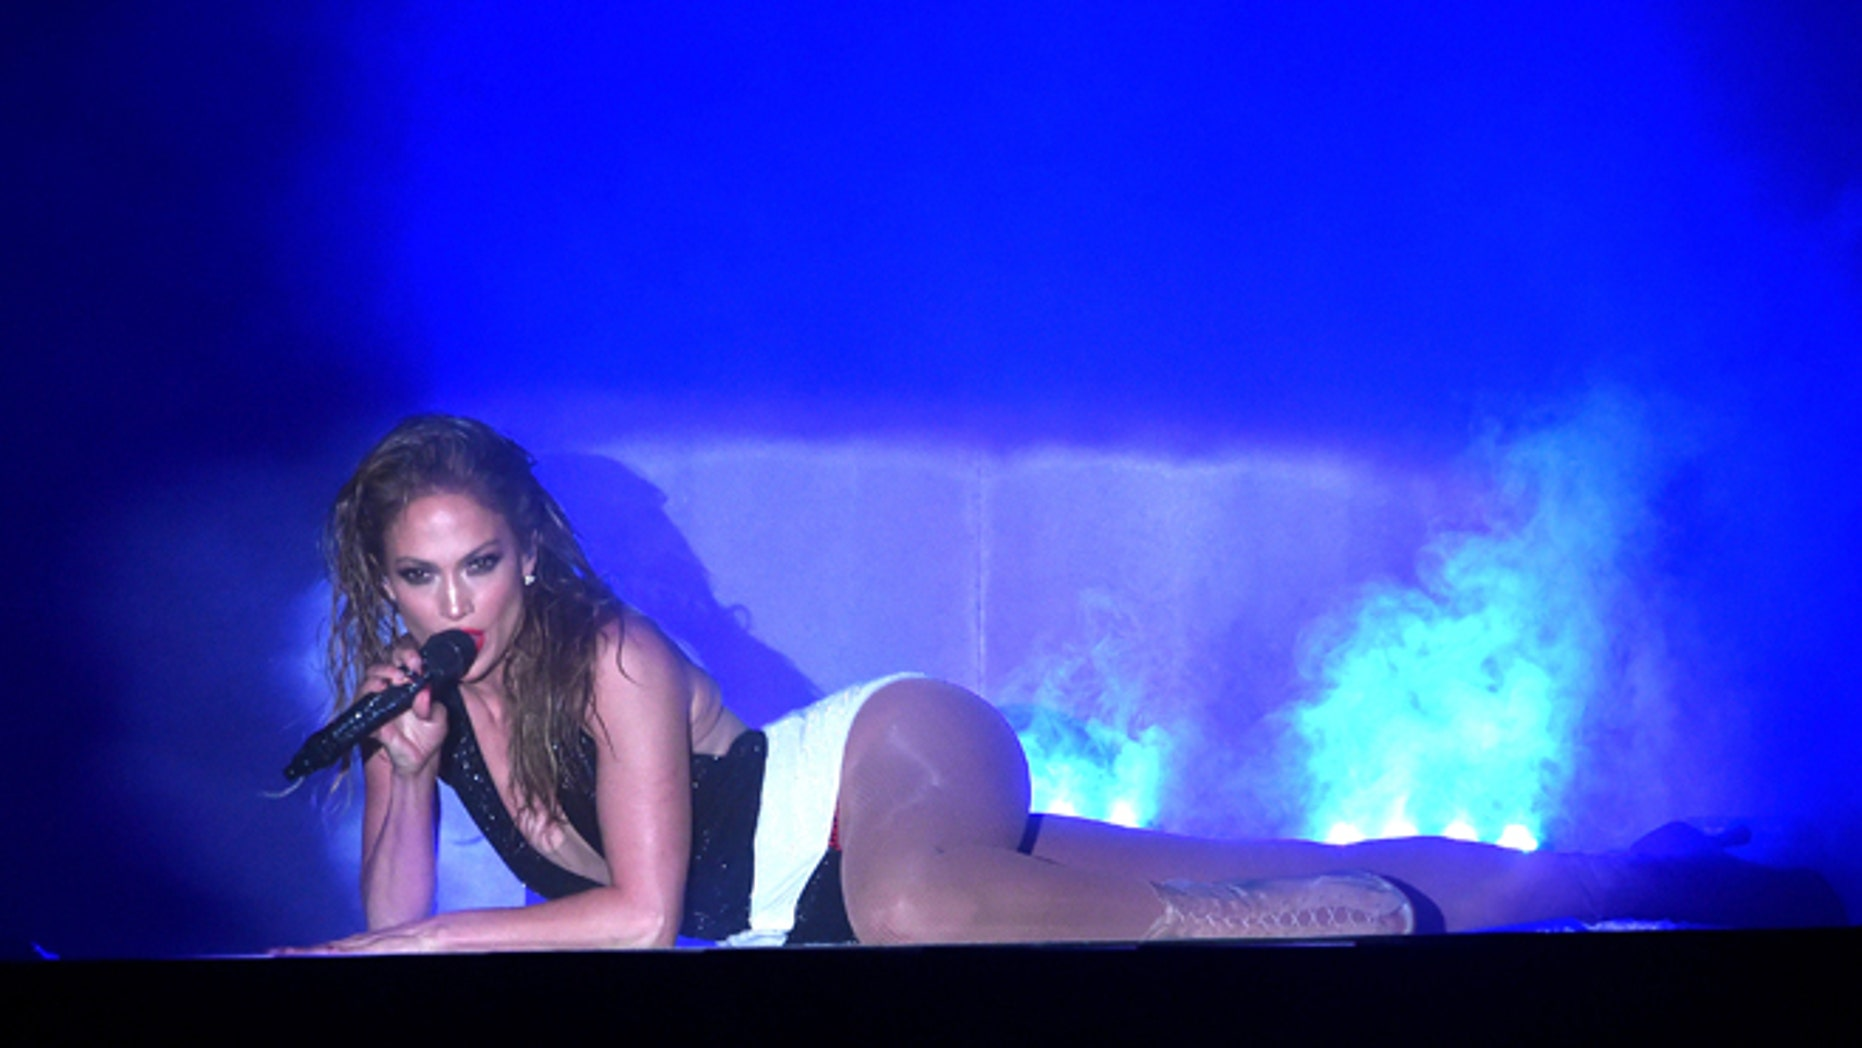 LOS ANGELES, CA - NOVEMBER 23:  Recording artist Jennifer Lopez performs onstage at the 2014 American Music Awards at Nokia Theatre L.A. Live on November 23, 2014 in Los Angeles, California.  (Photo by Kevin Winter/Getty Images)